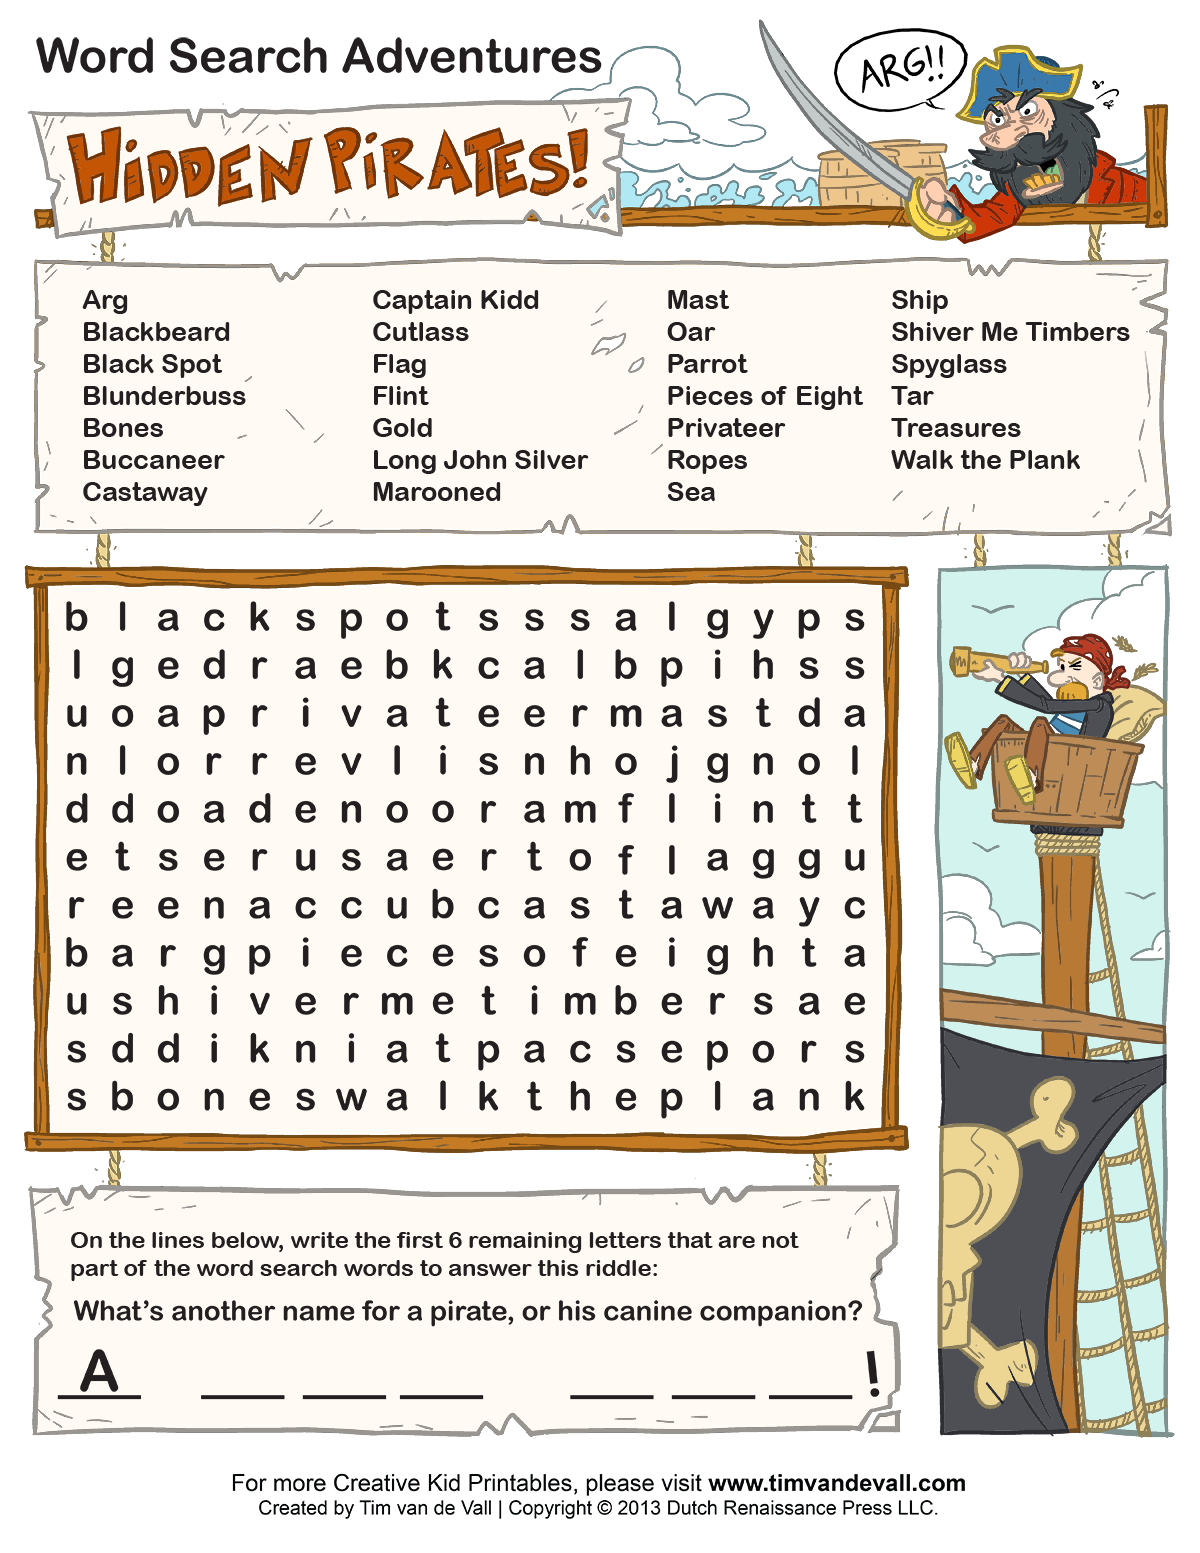 image regarding Free Printable Word Search for Kids named Cost-free Printable Term Lookups for Small children